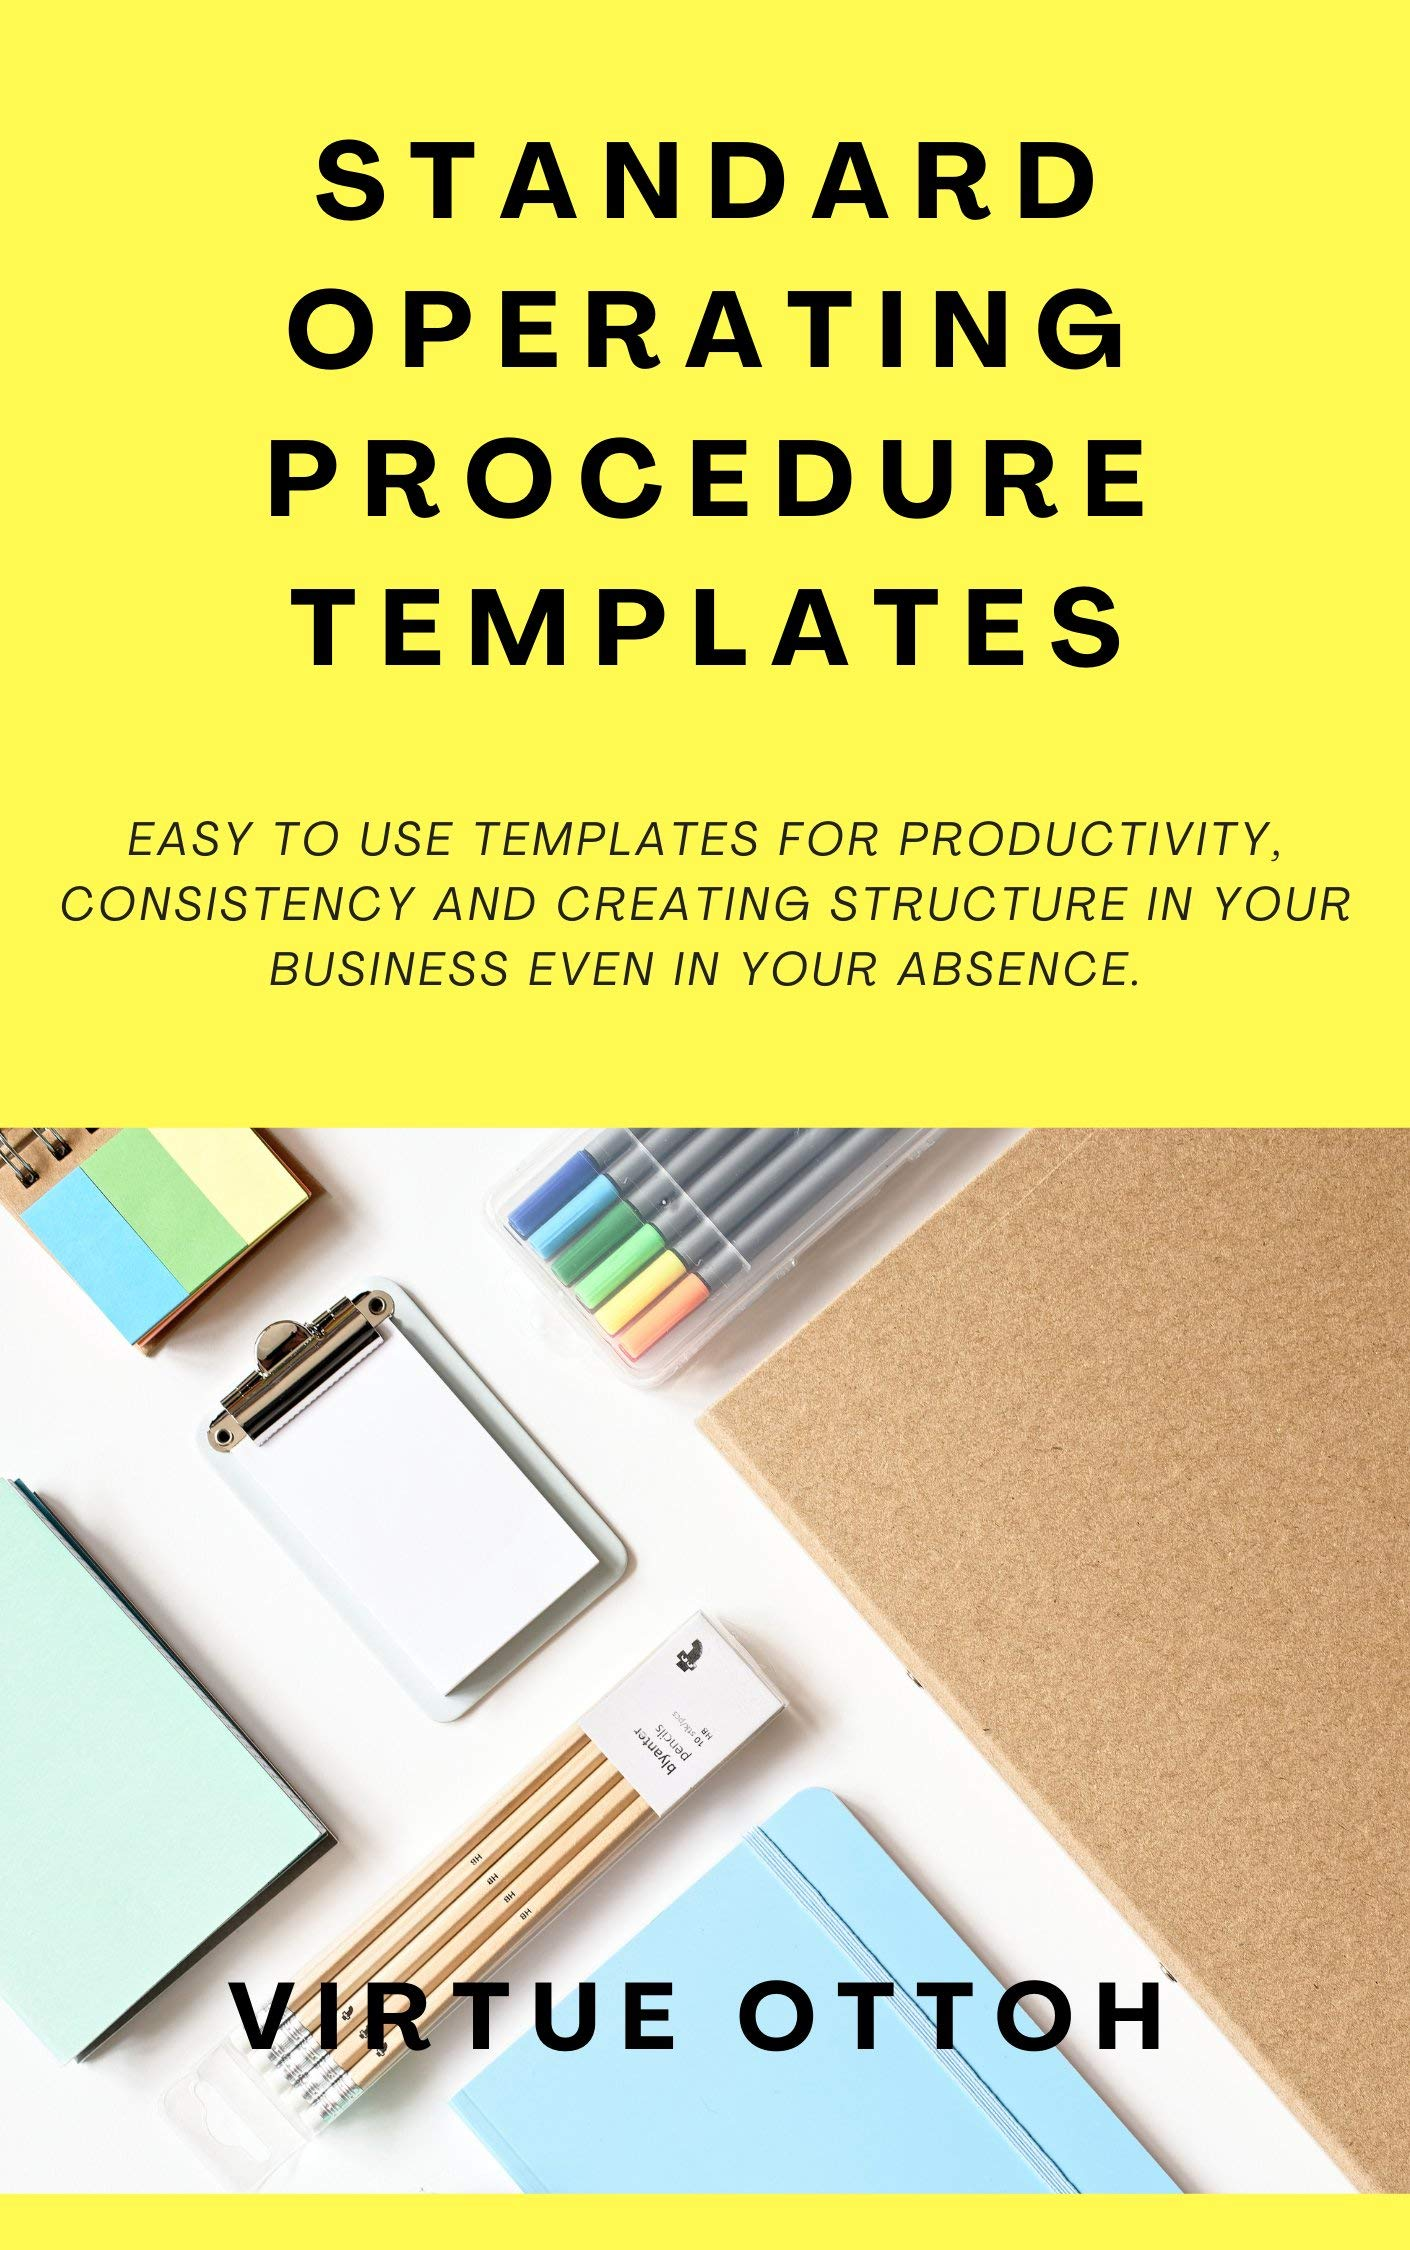 STANDARD OPERATING PROCEDURE TEMPLATES: EASY TO USE TEMPLATES FOR PRODUCTIVITY, CONSISTENCY AND CREATING STRUCTURE IN YOUR BUSINESS EVEN IN YOUR ABSENCE.